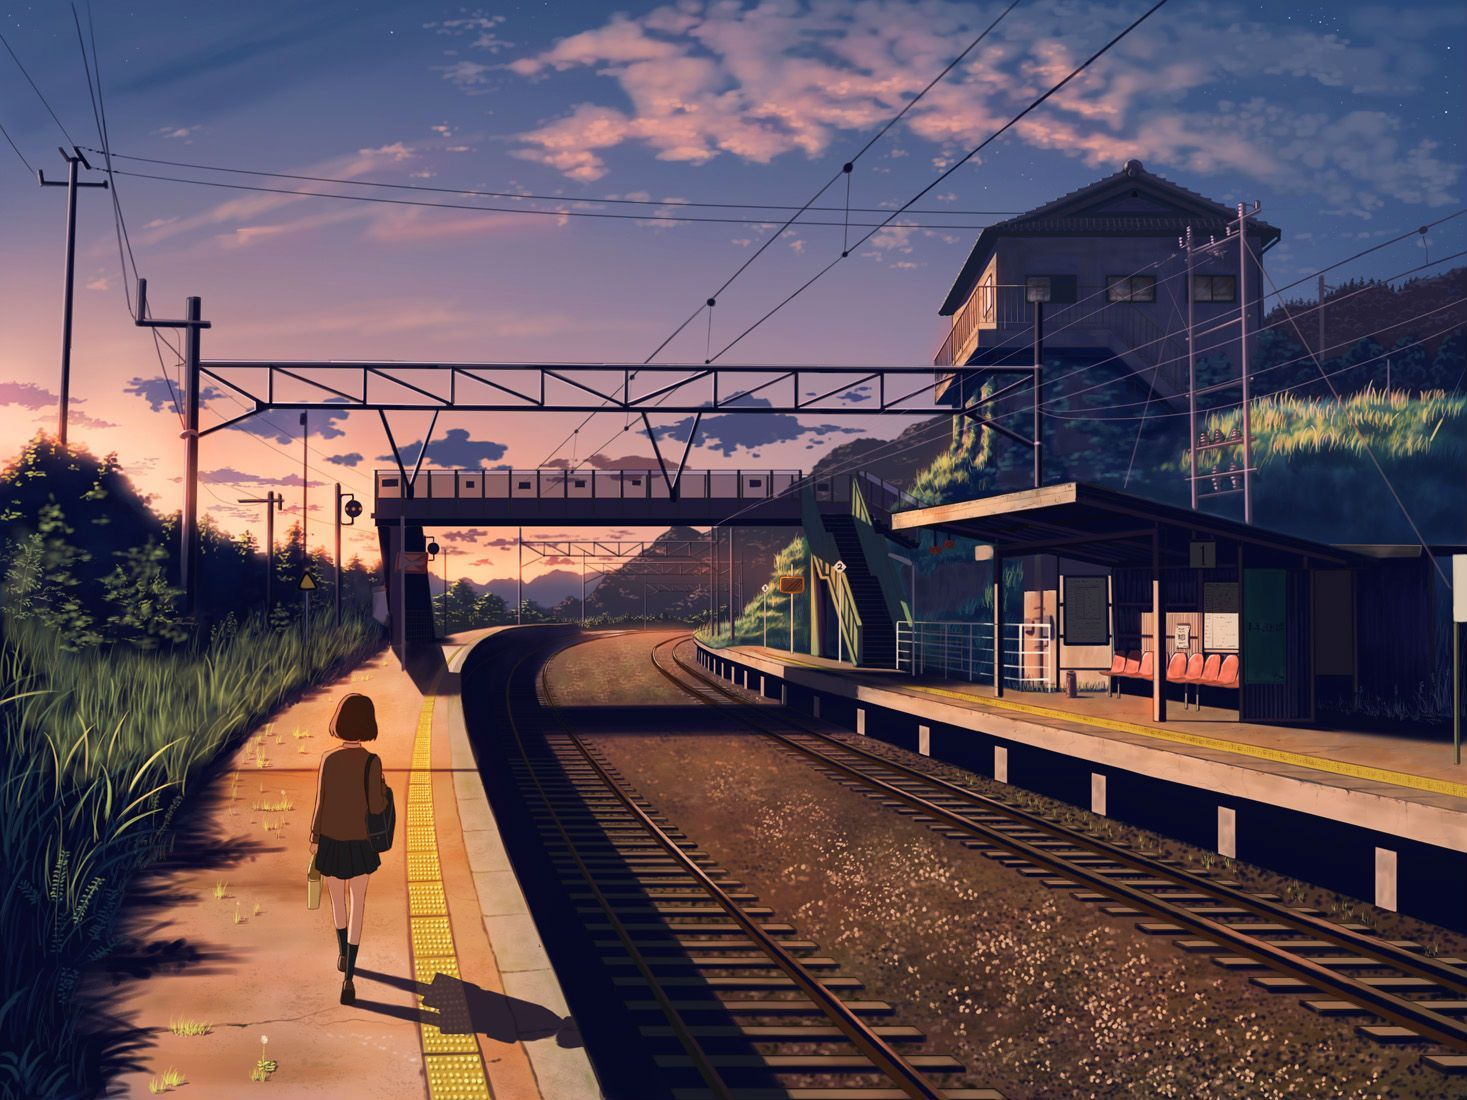 Anime Train Wallpapers Top Free Anime Train Backgrounds Wallpaperaccess